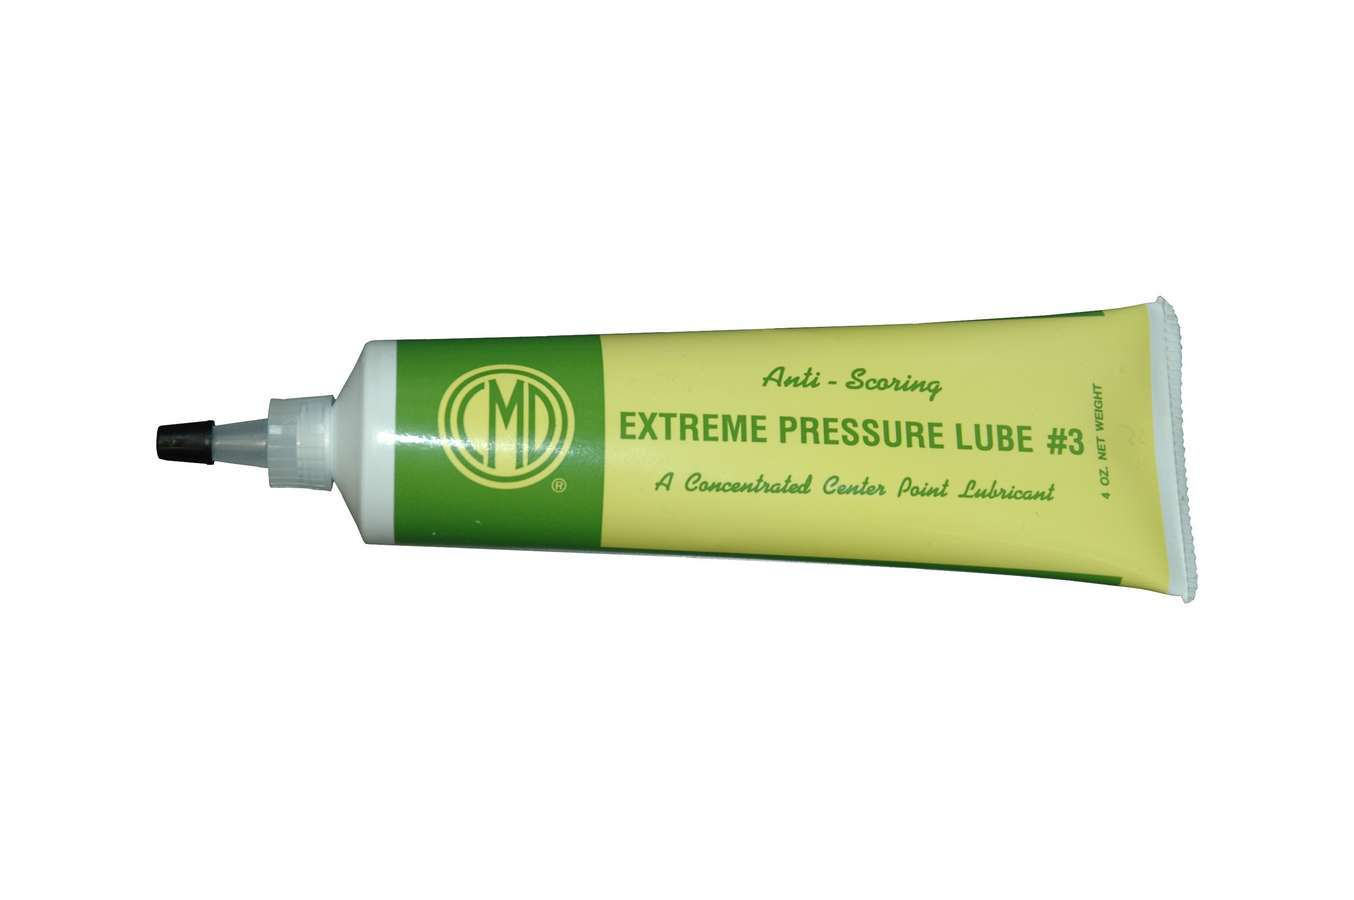 CMD Assembly Lubricant